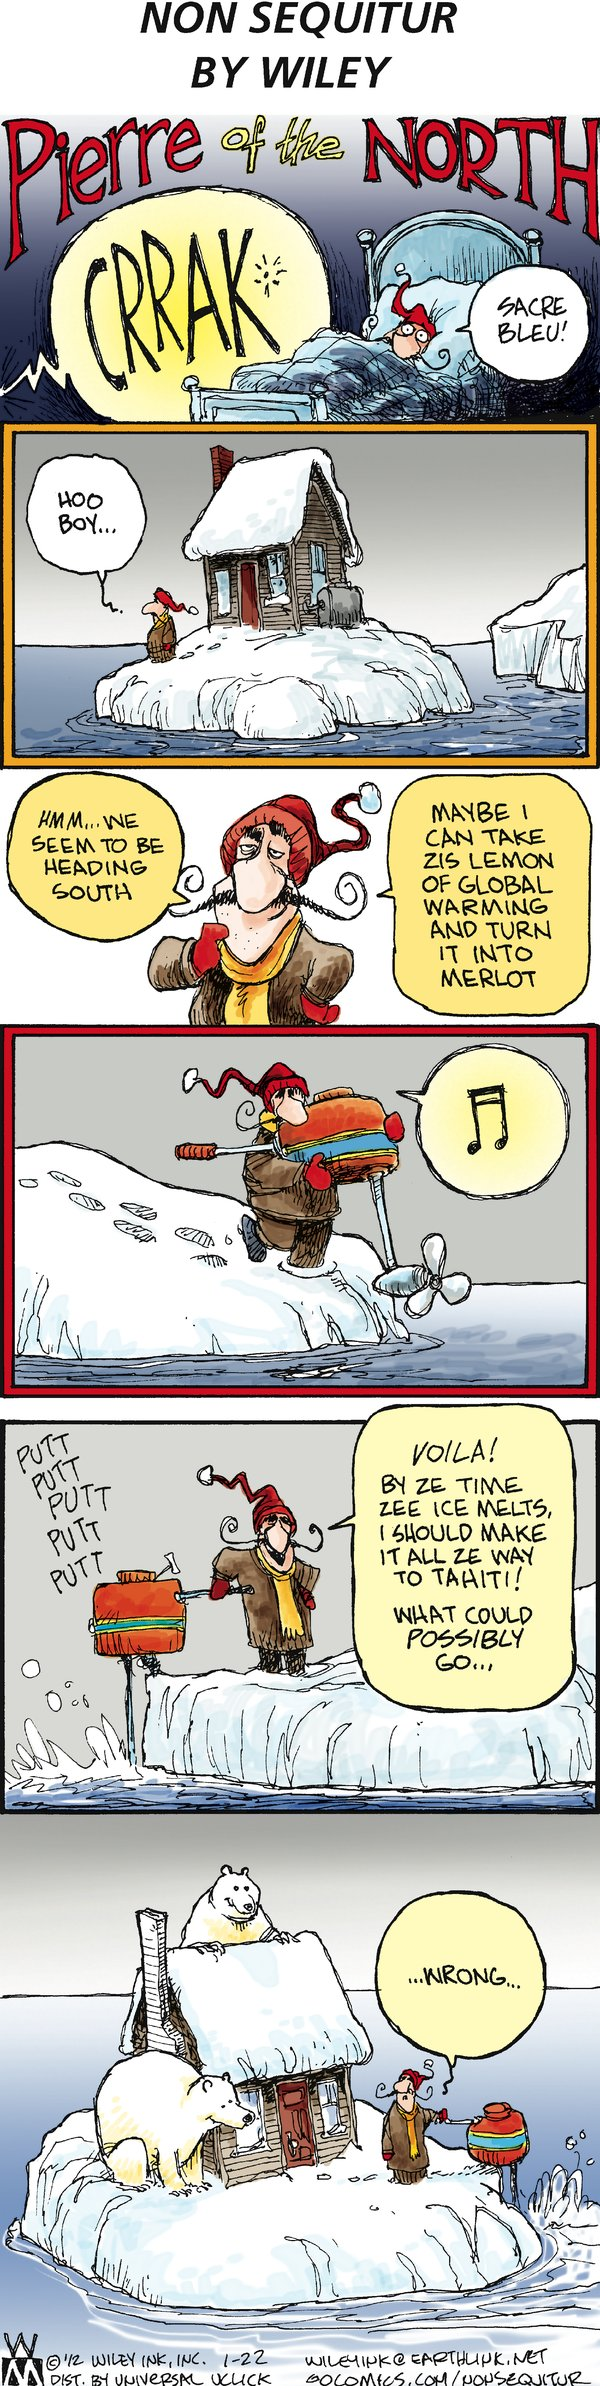 Non Sequitur Comic Strip for January 22, 2012